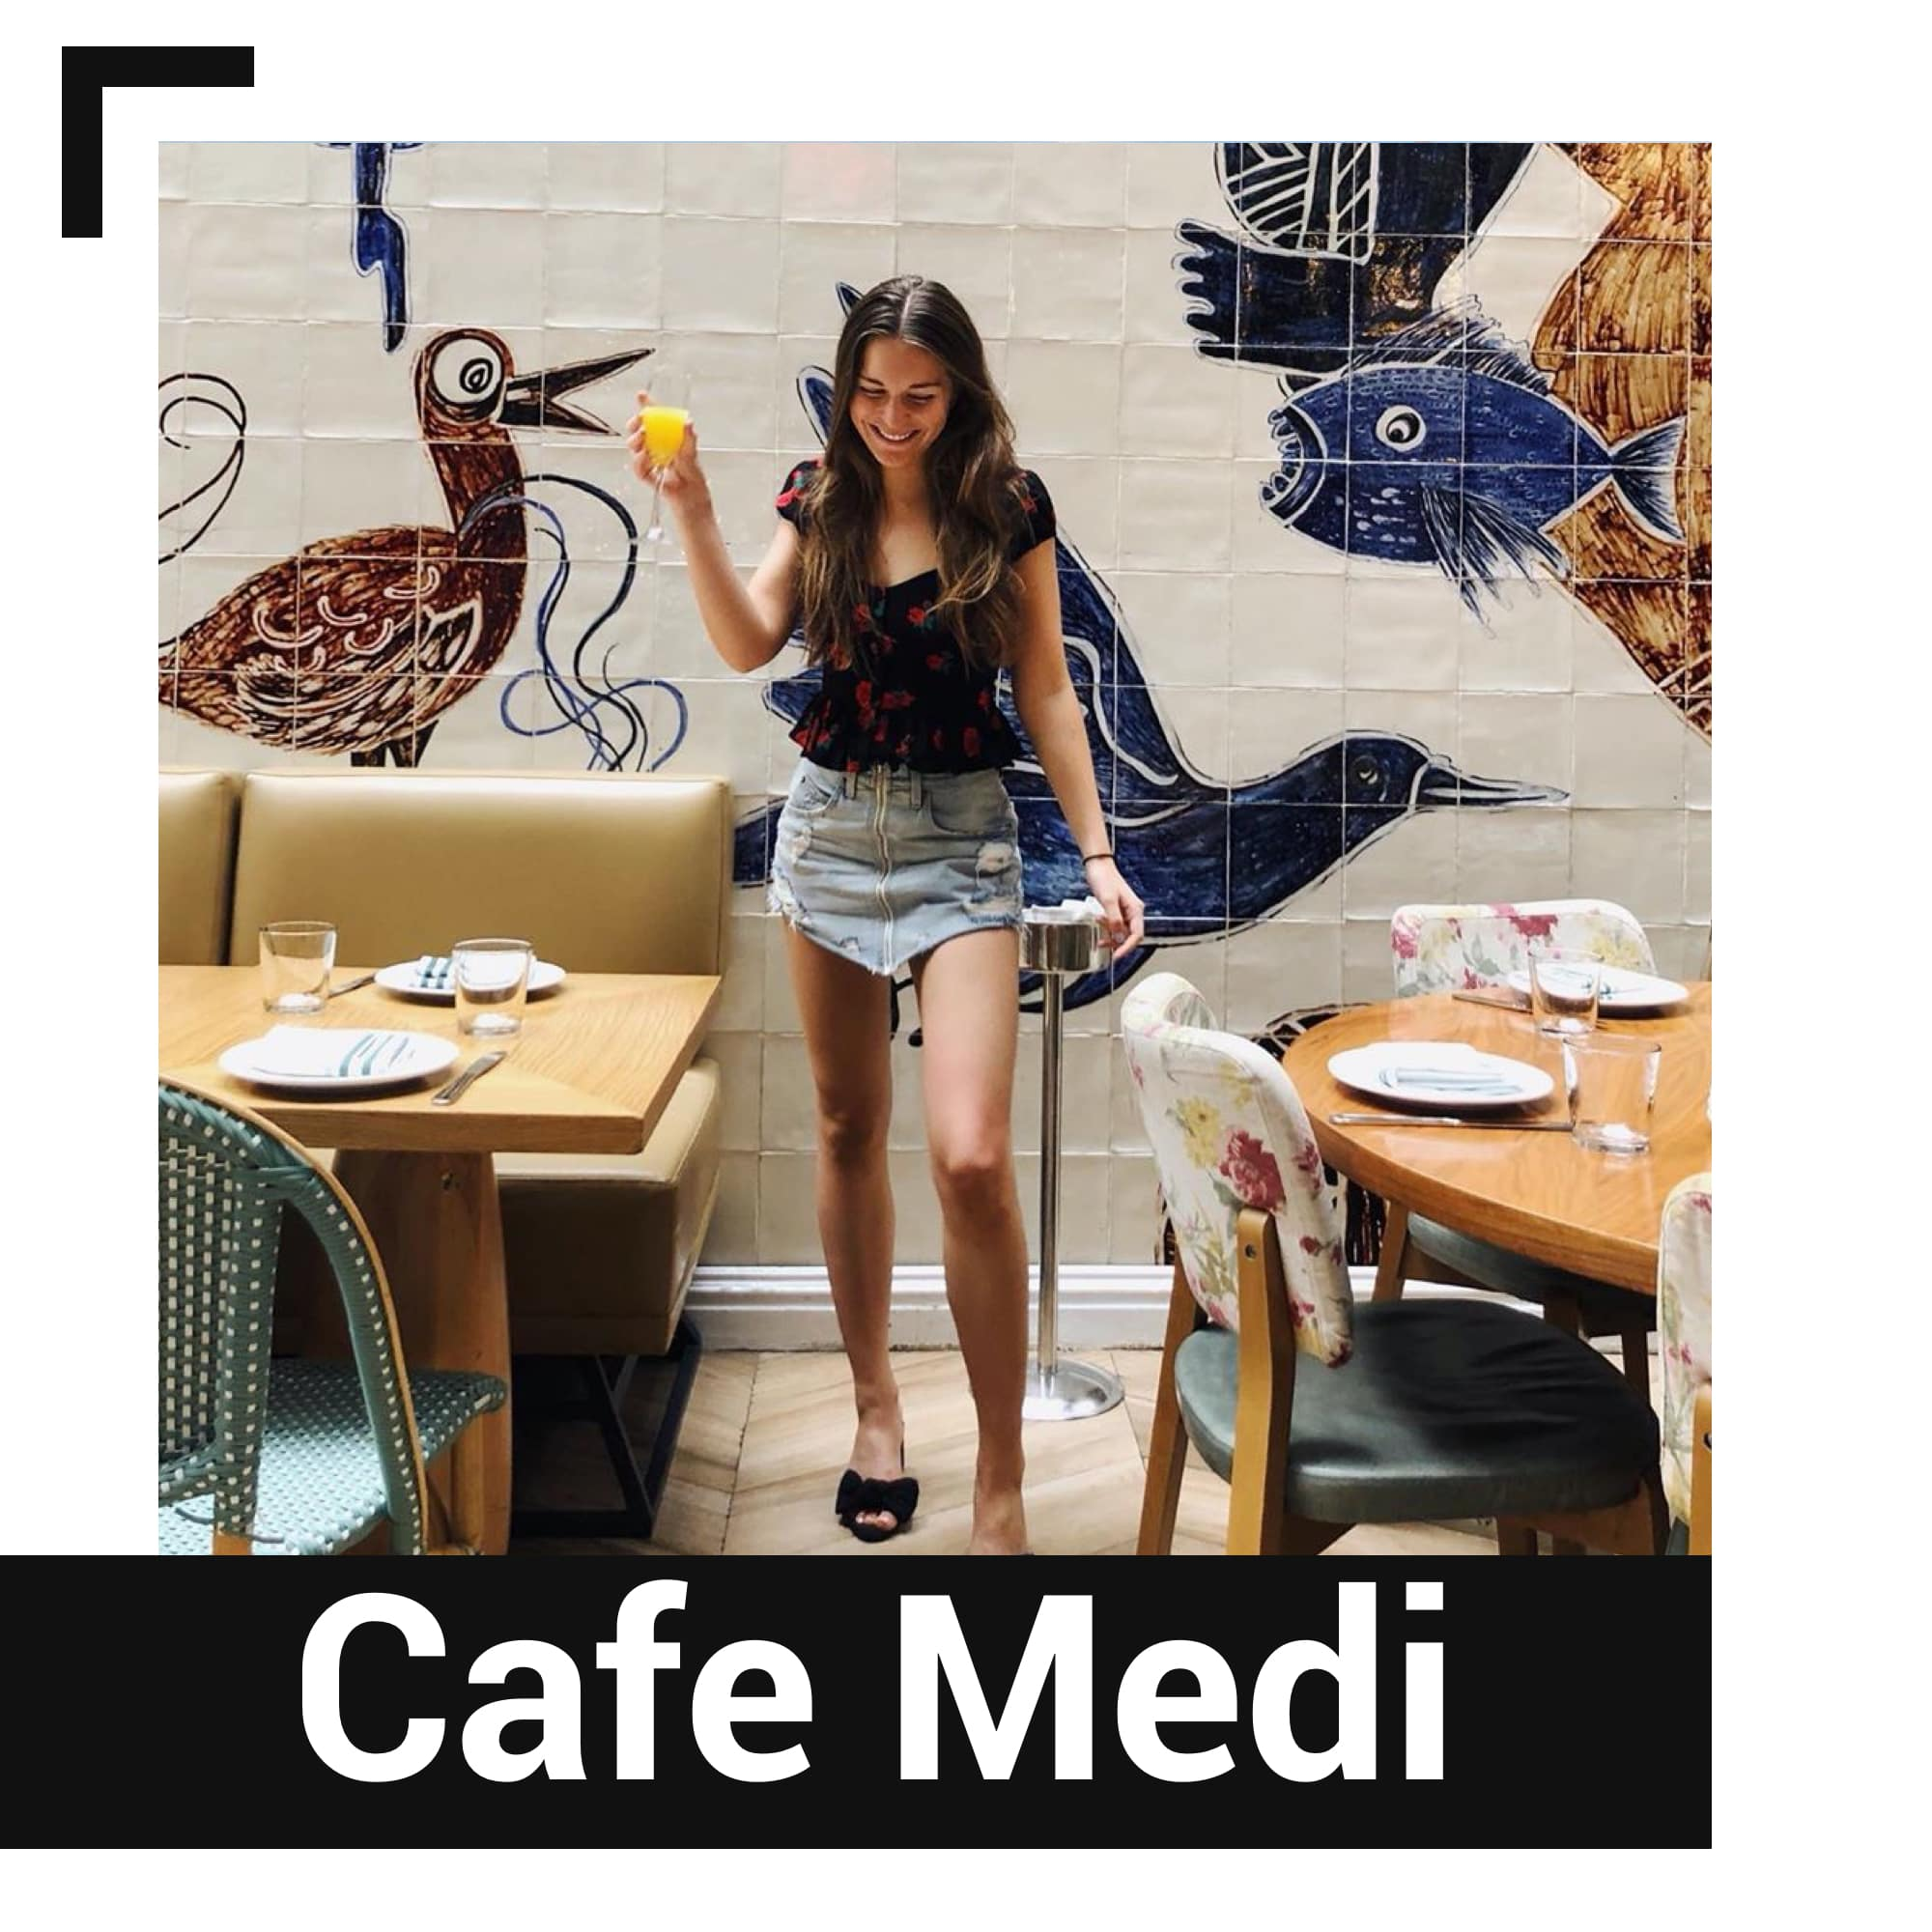 Cafe Medi in New York City